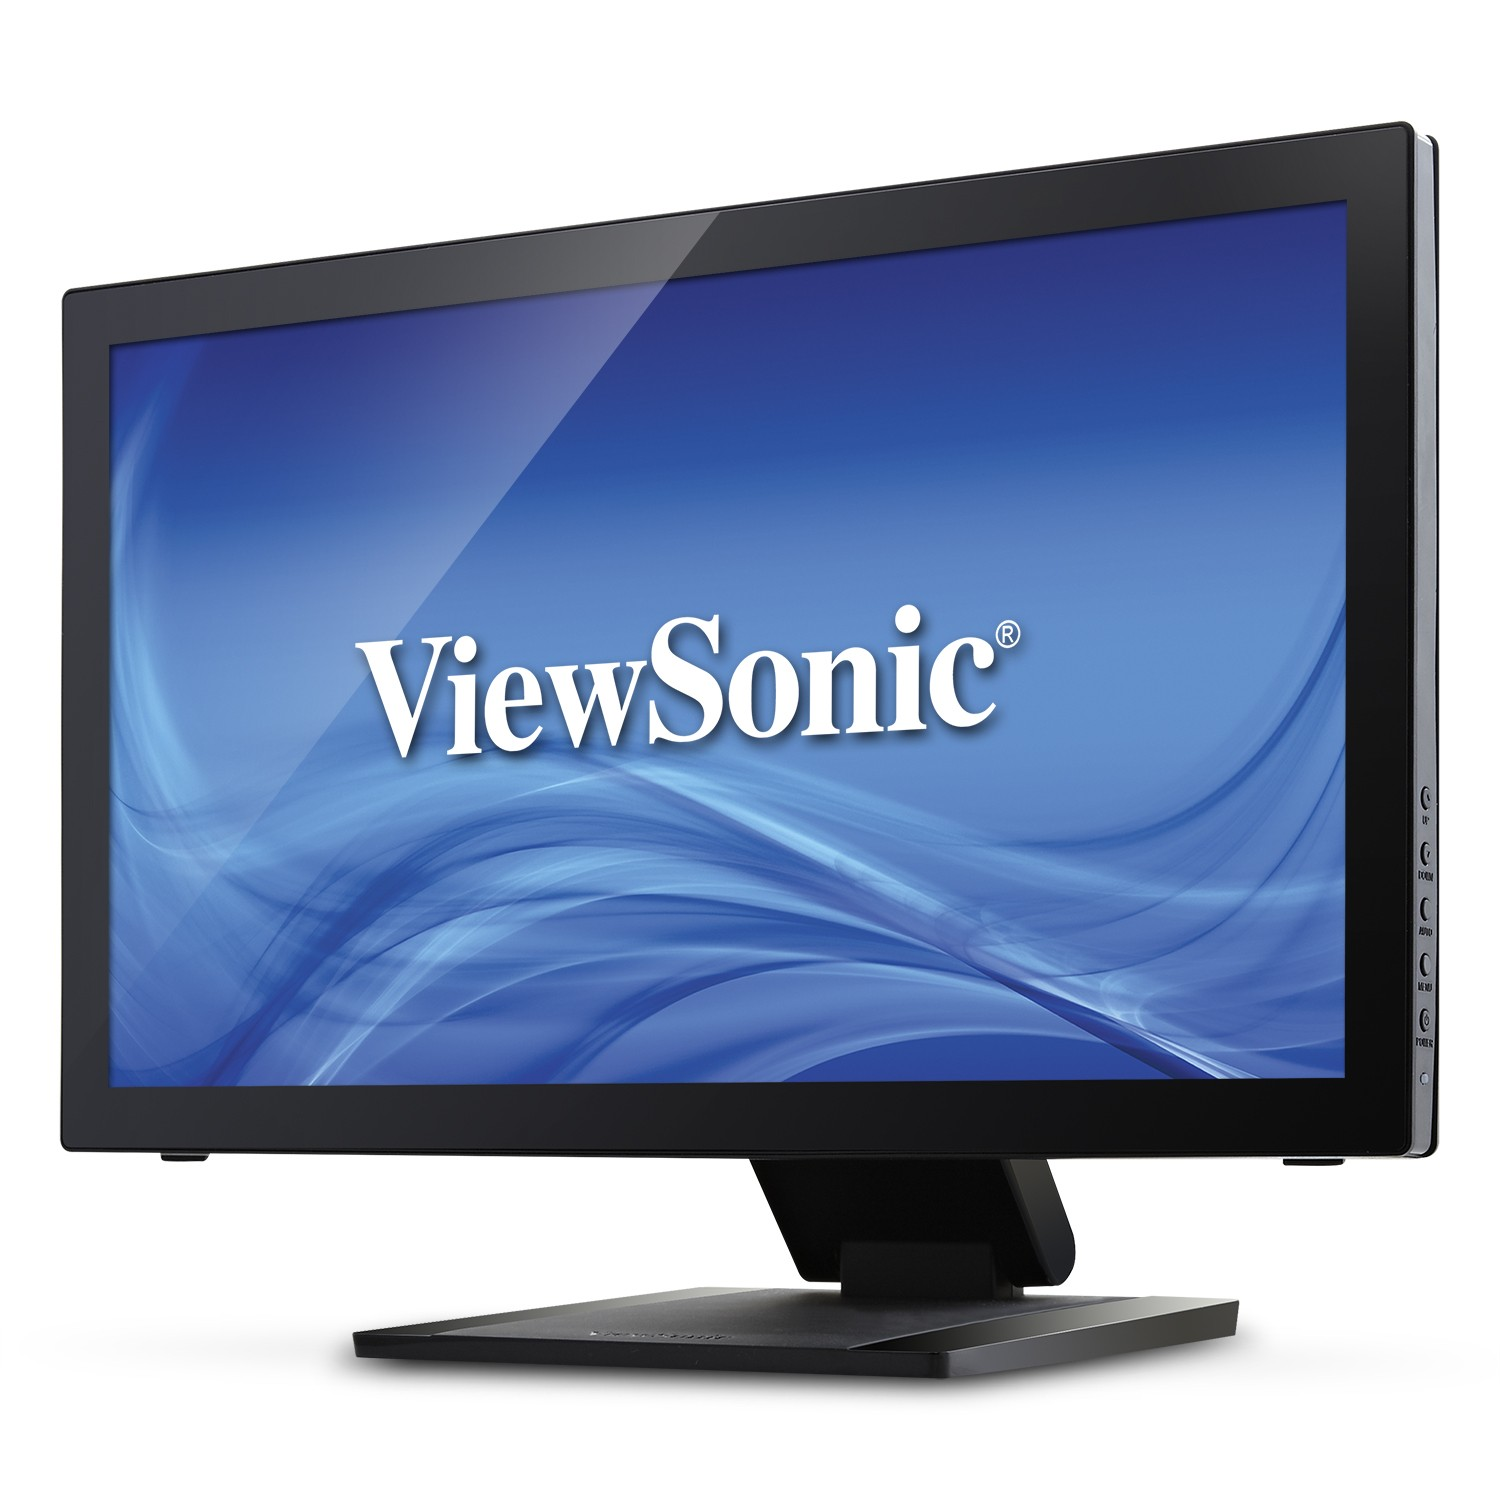 ViewSonic Announces Next Generation 10Point Touch Display